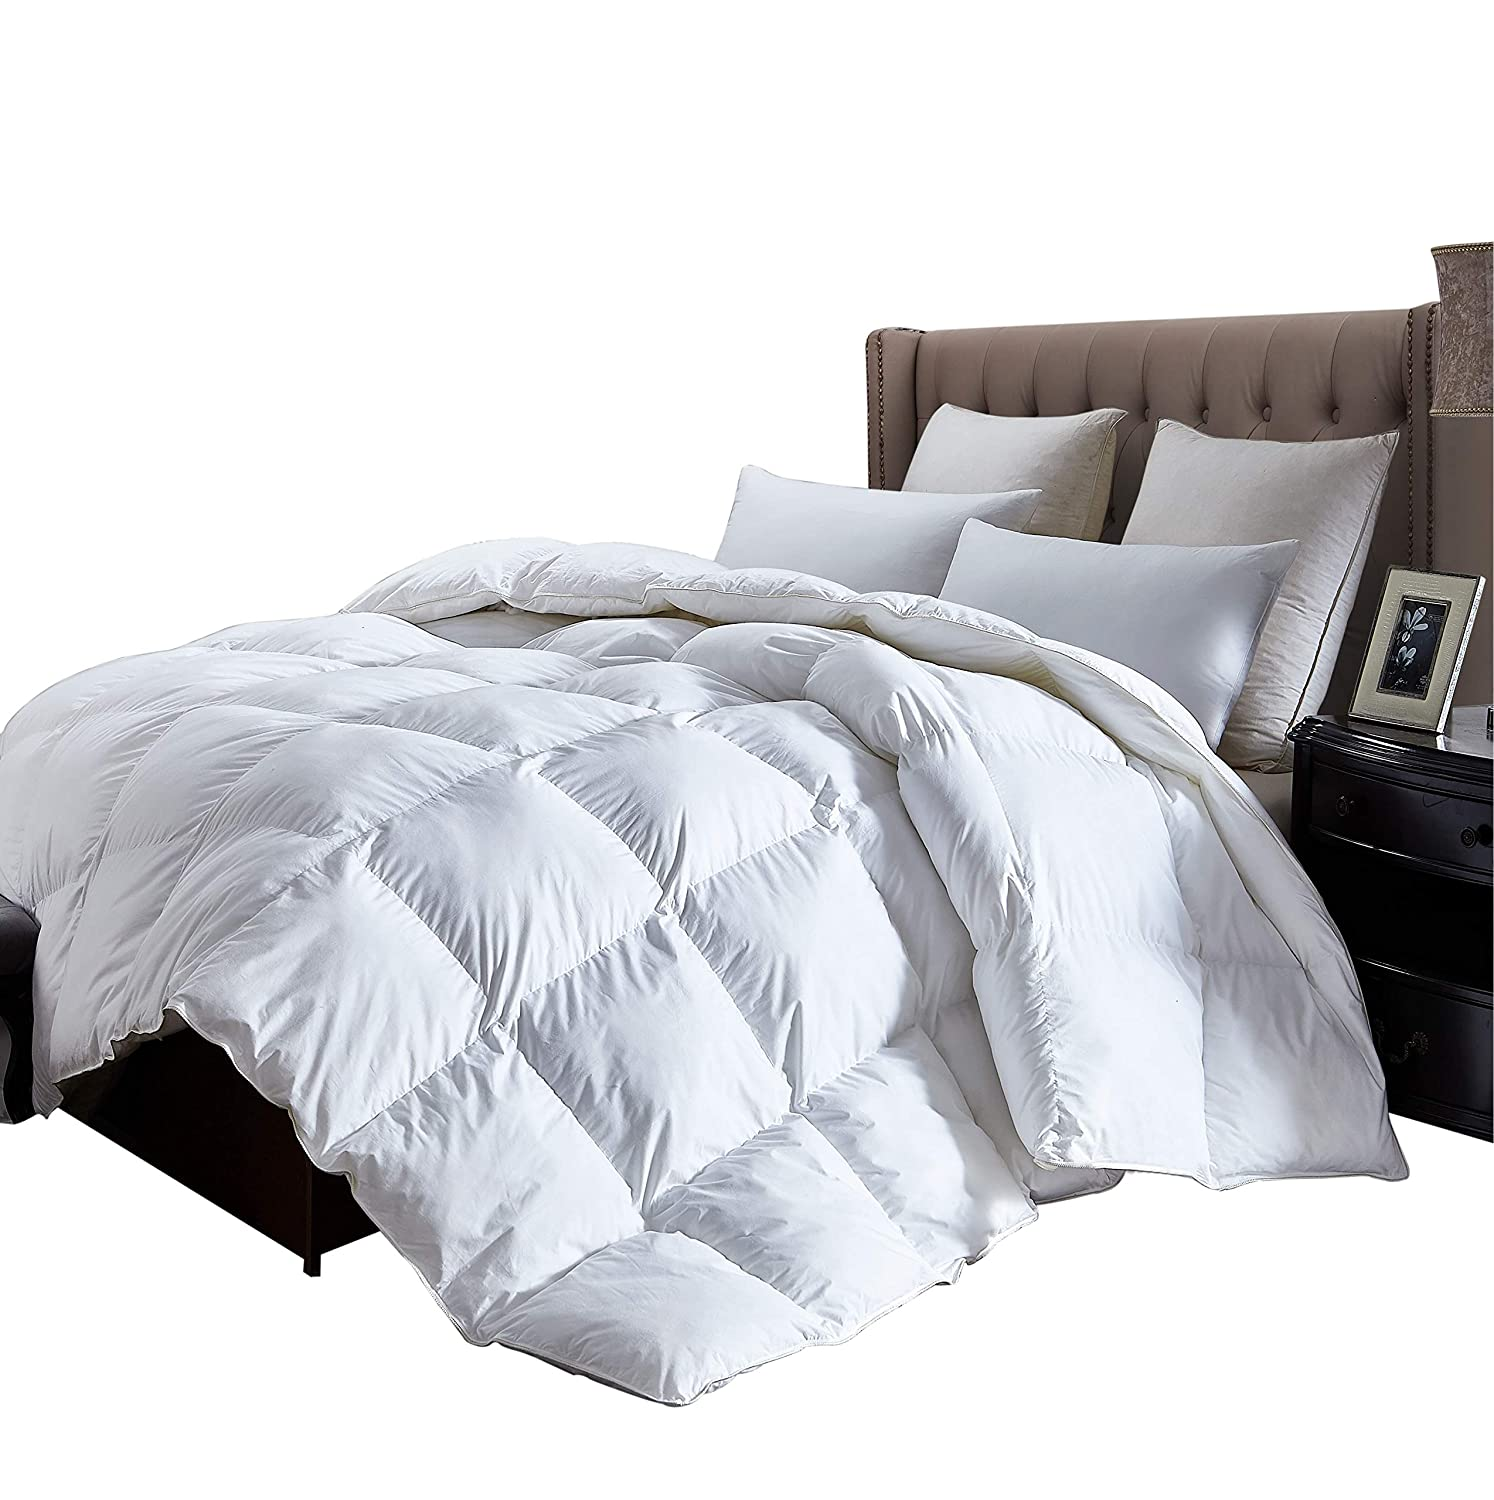 Luxurious Queen Size Lightweight GOOSE DOWN Comforter Duvet Insert All Season, 1200 Thread Count 100% Egyptian Cotton, 750+ Fill Power, 38 oz Fill Weight, Hypoallergenic, White Color Egyptian Bedding